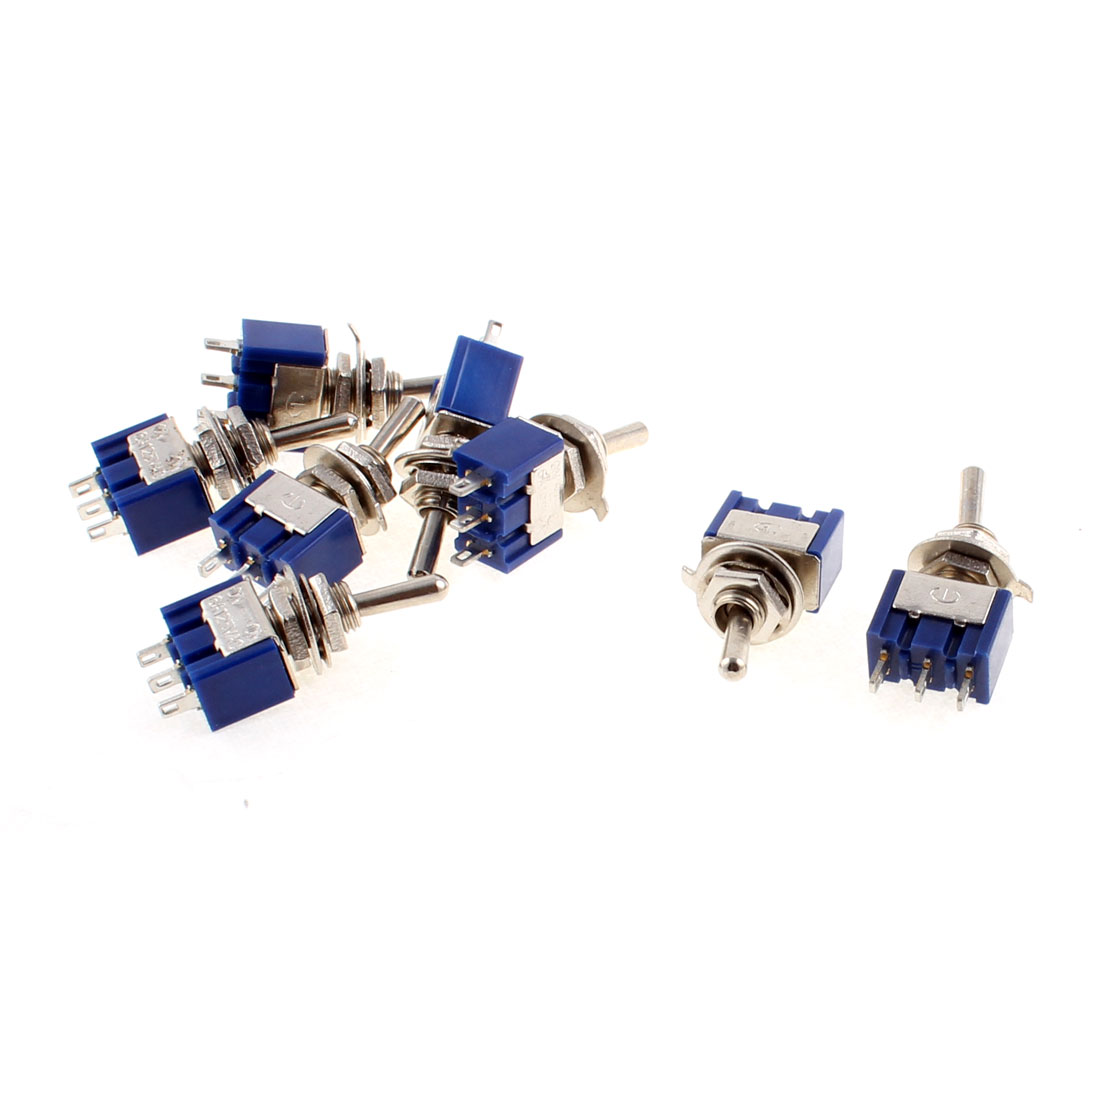 8pcs AC 125V 6A 2 Position ON/ON 3 Terminals M6 Thread Panel Mounting SPDT Latching Miniature Toggle Switch